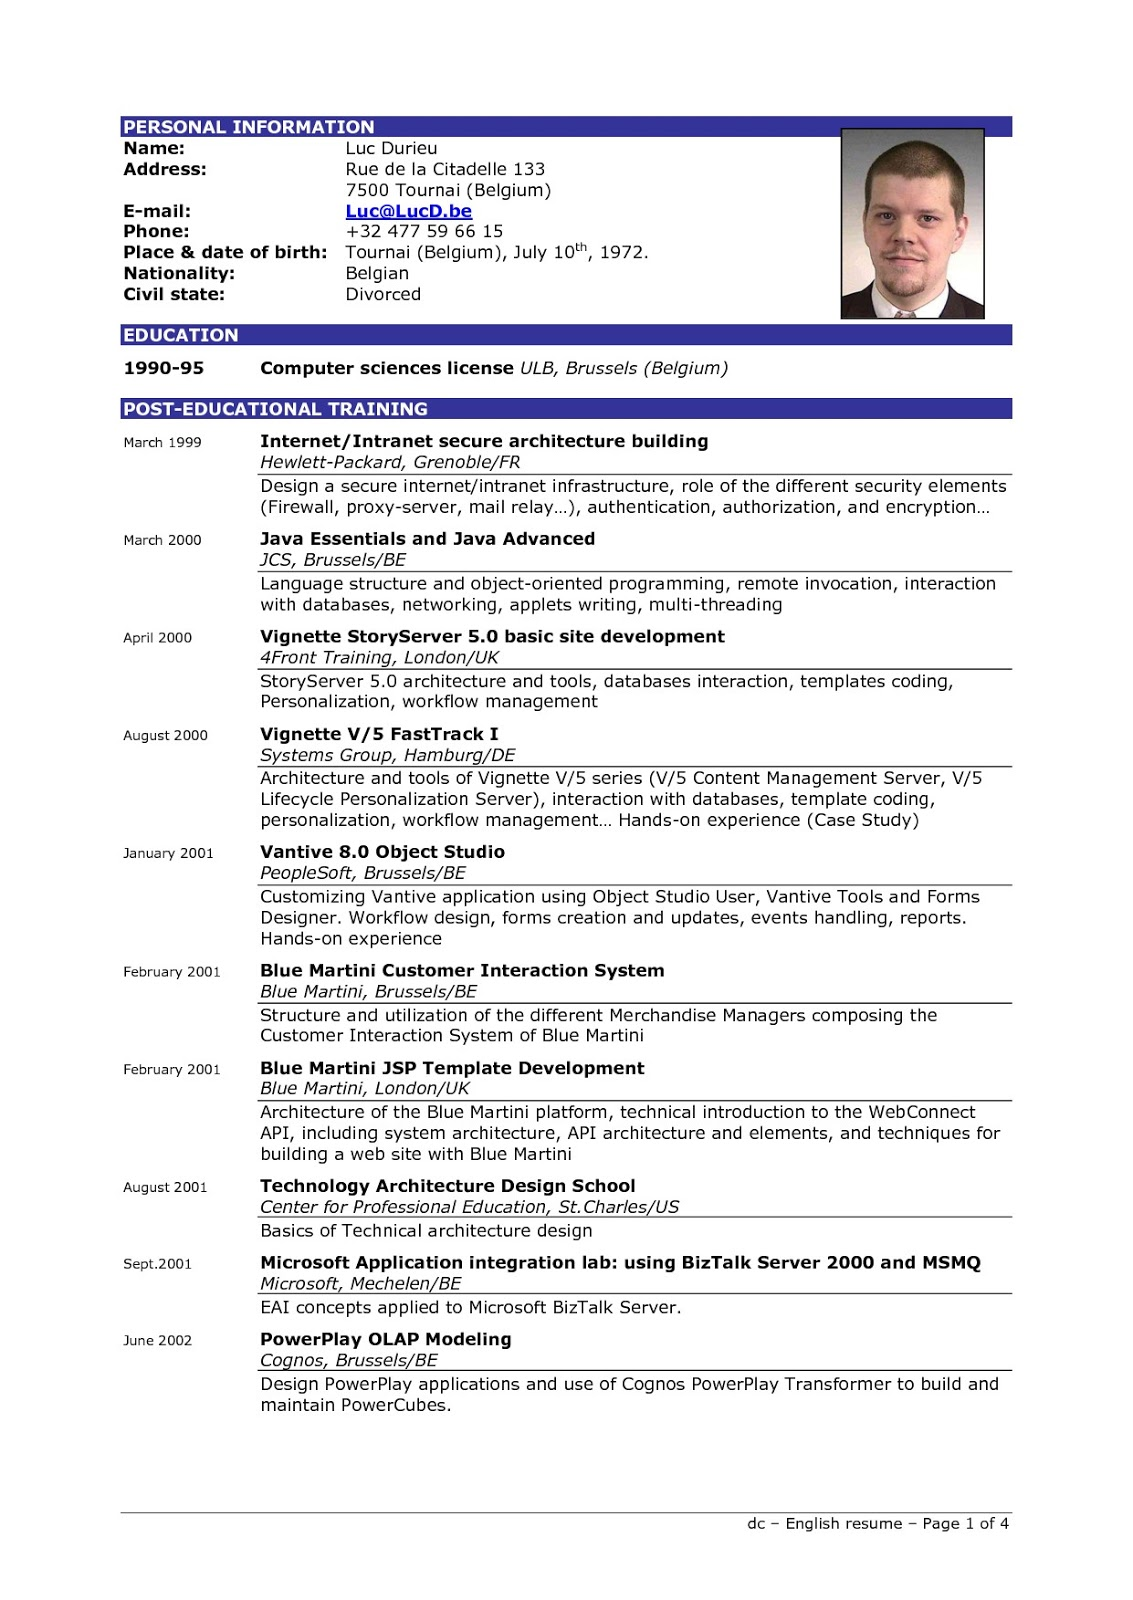 excellent resume sample sample resumes. Resume Example. Resume CV Cover Letter